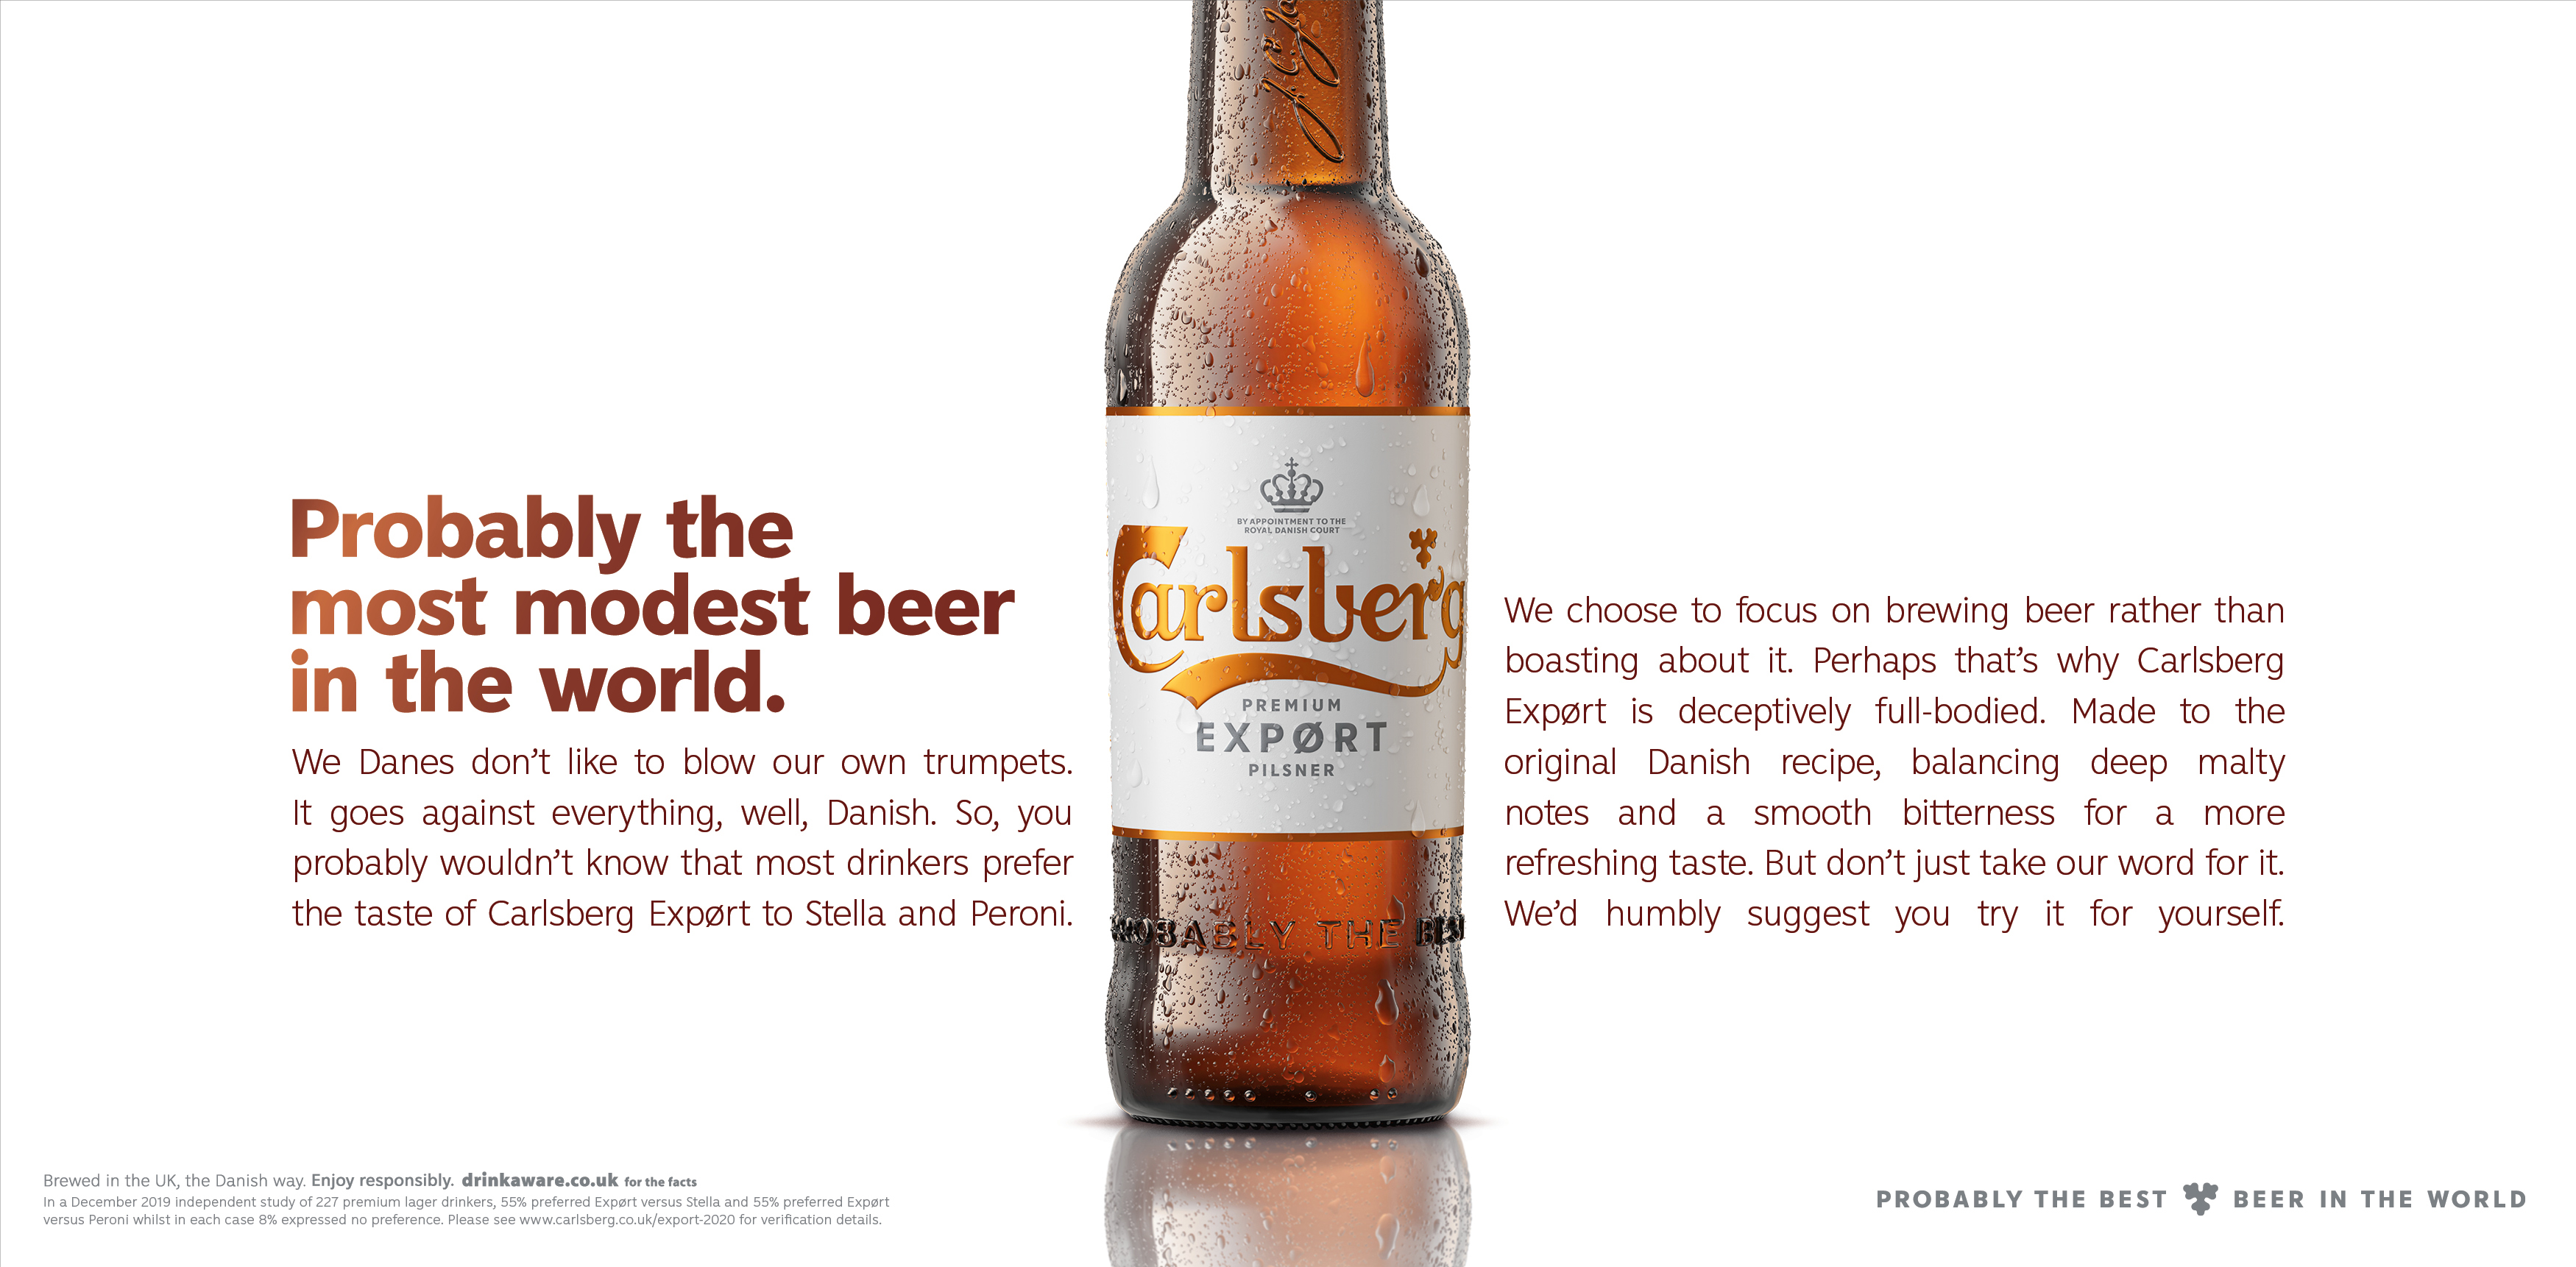 Carlsberg: ad claims brand is